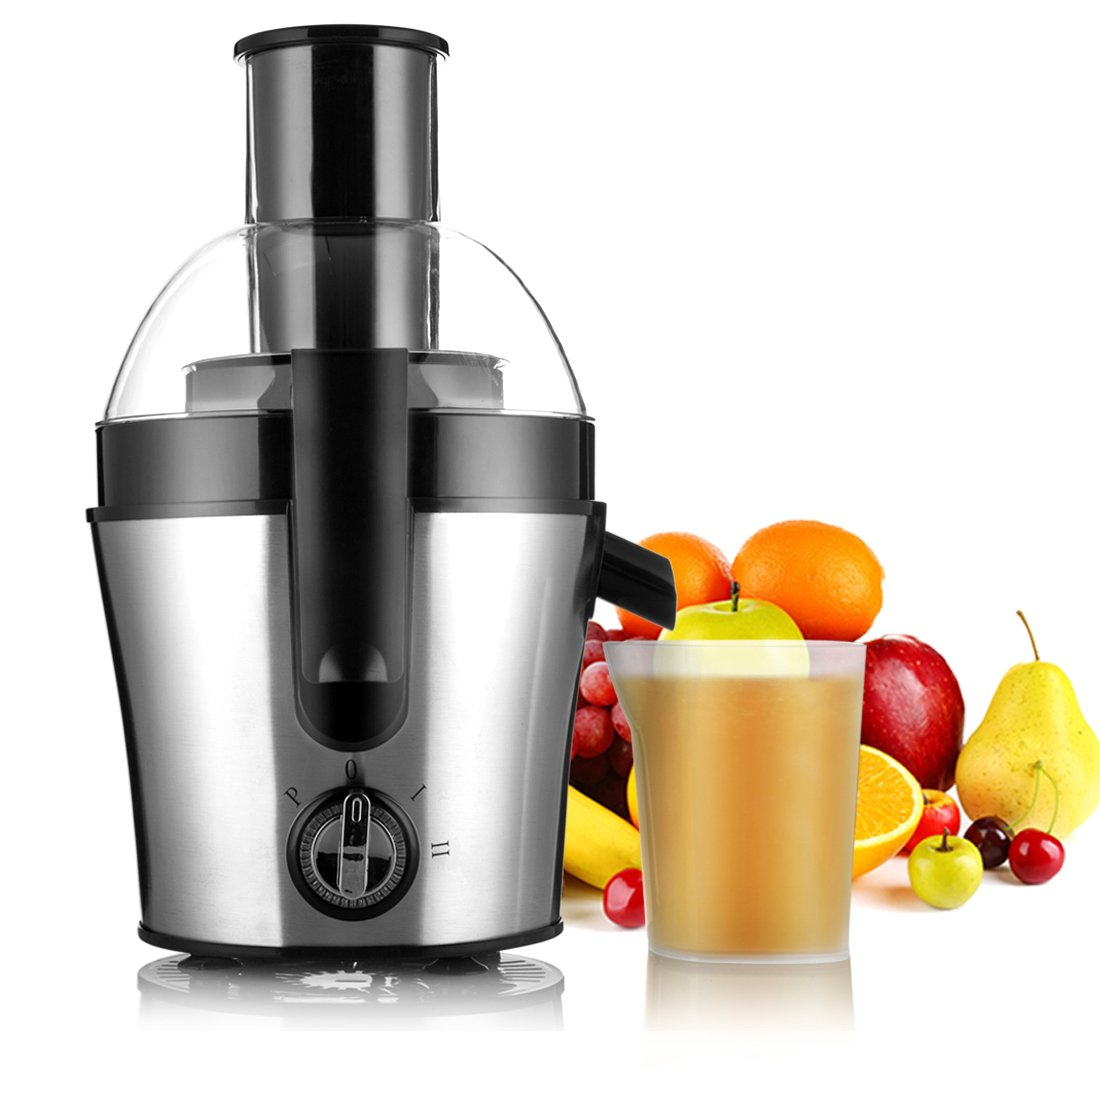 Juice Extractor, Professional Electric Centrifugal Juice Maker